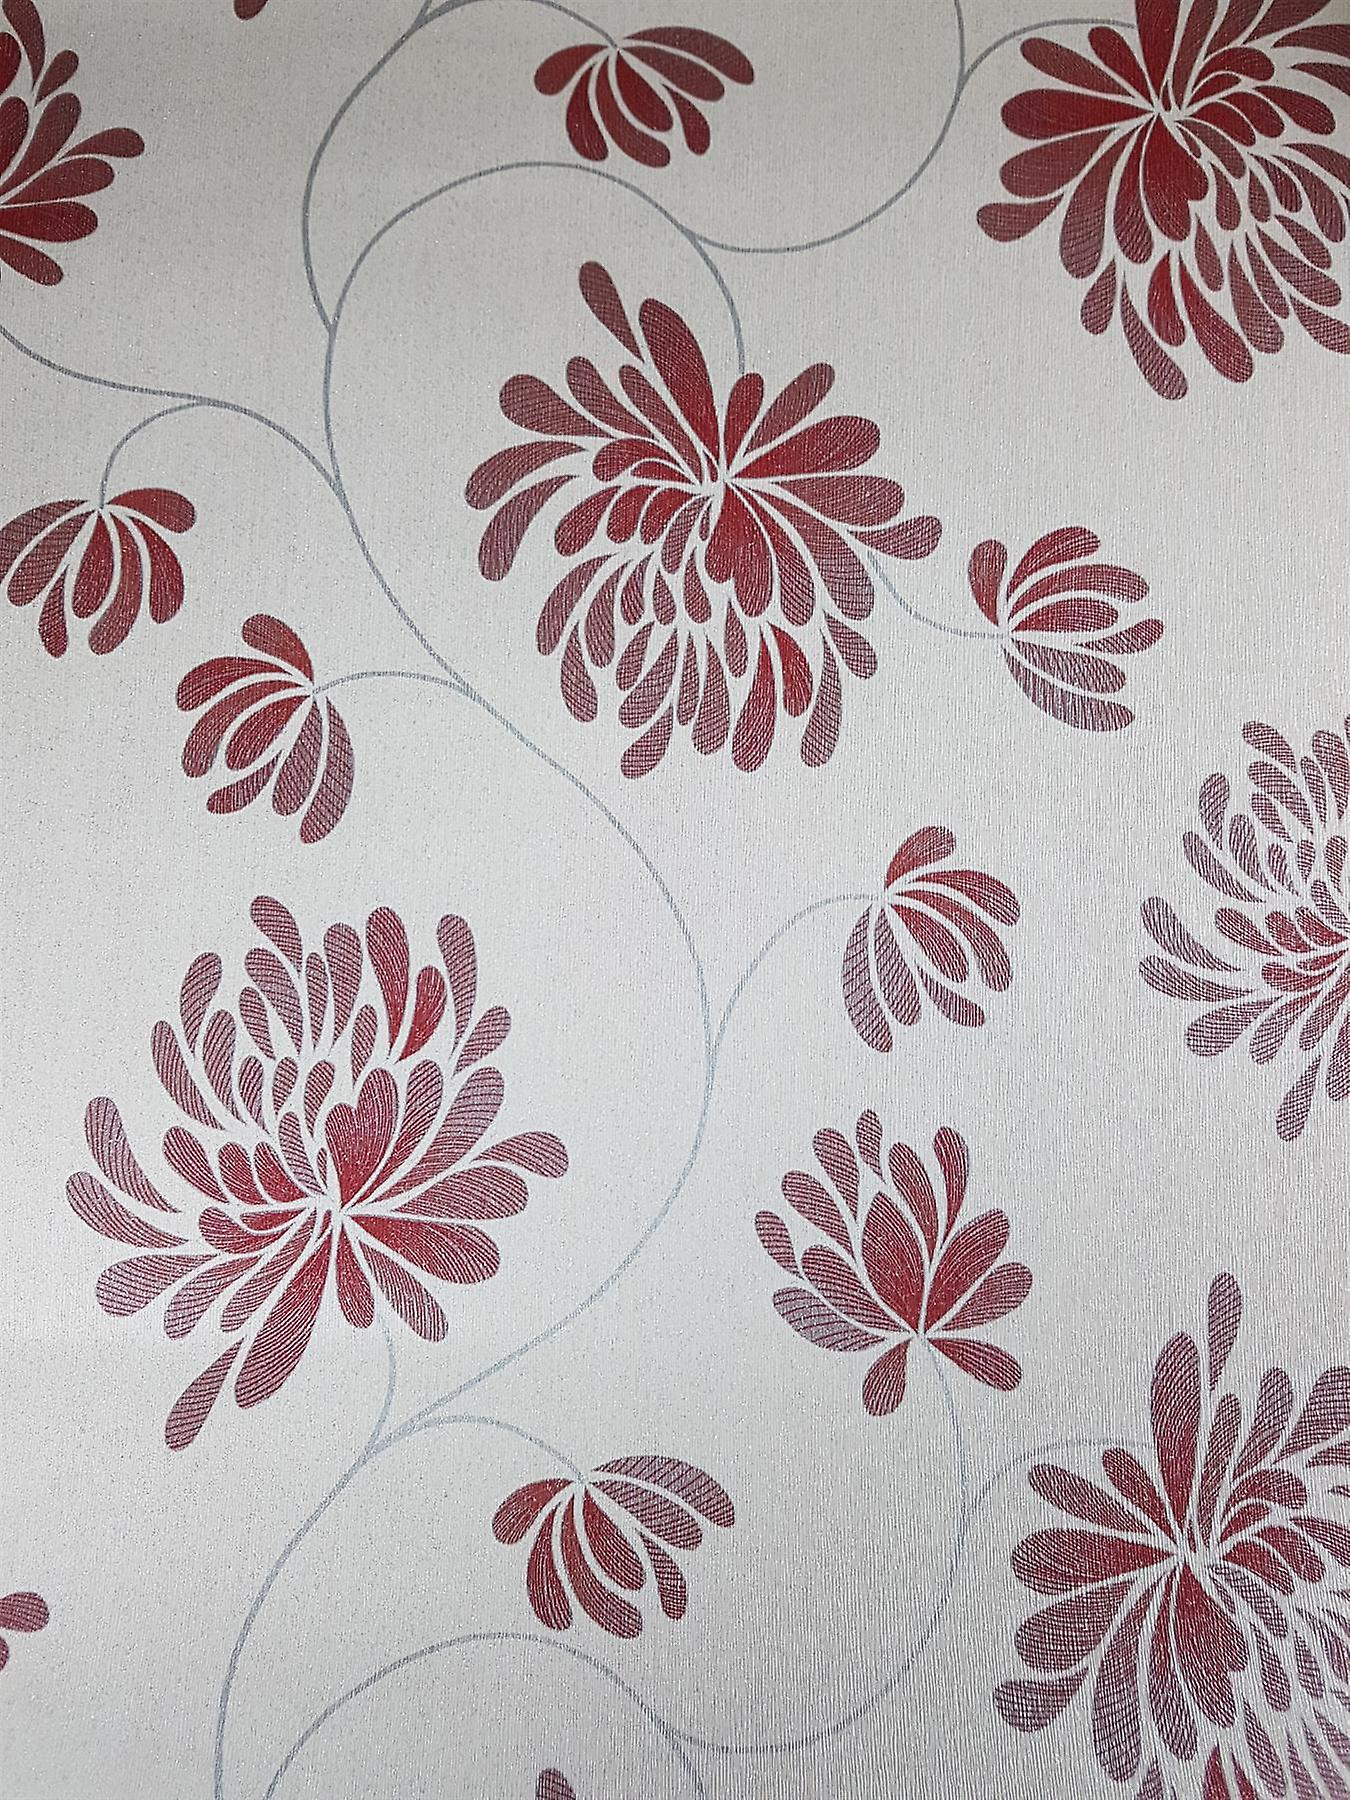 Red Floral Trail Glitter Wallpaper Foliage Silver Shimmer Washable